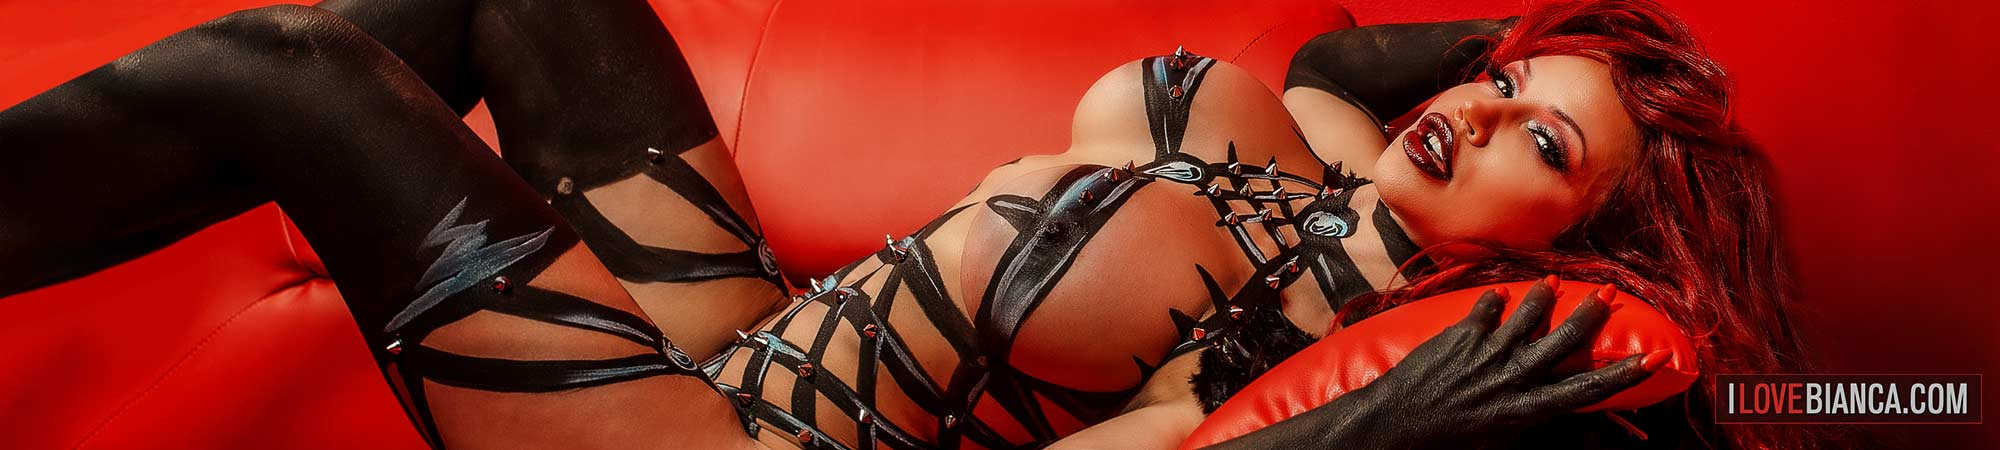 Bianca Beauchamp: latex, lingerie, nude photos + videos